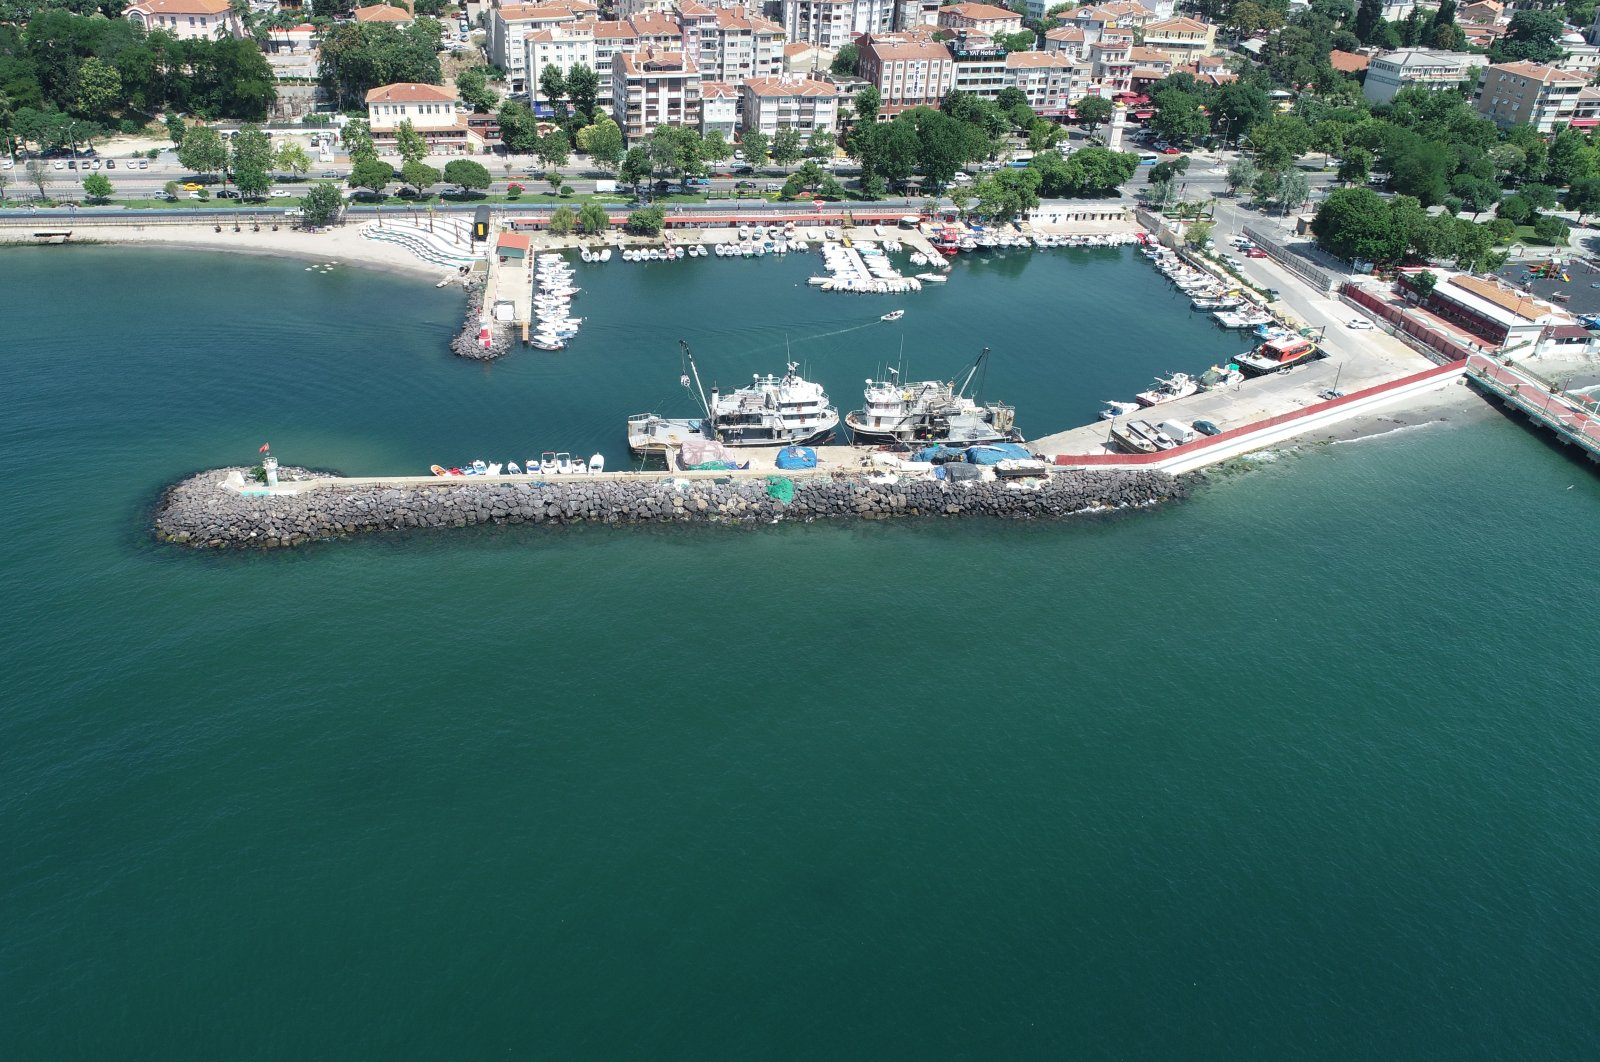 A general view of a harbor in Tekirdağ province after removal of sea snot from the surrounding area, Tekirdağ, Turkey, July 8, 2021. (AA Photo)